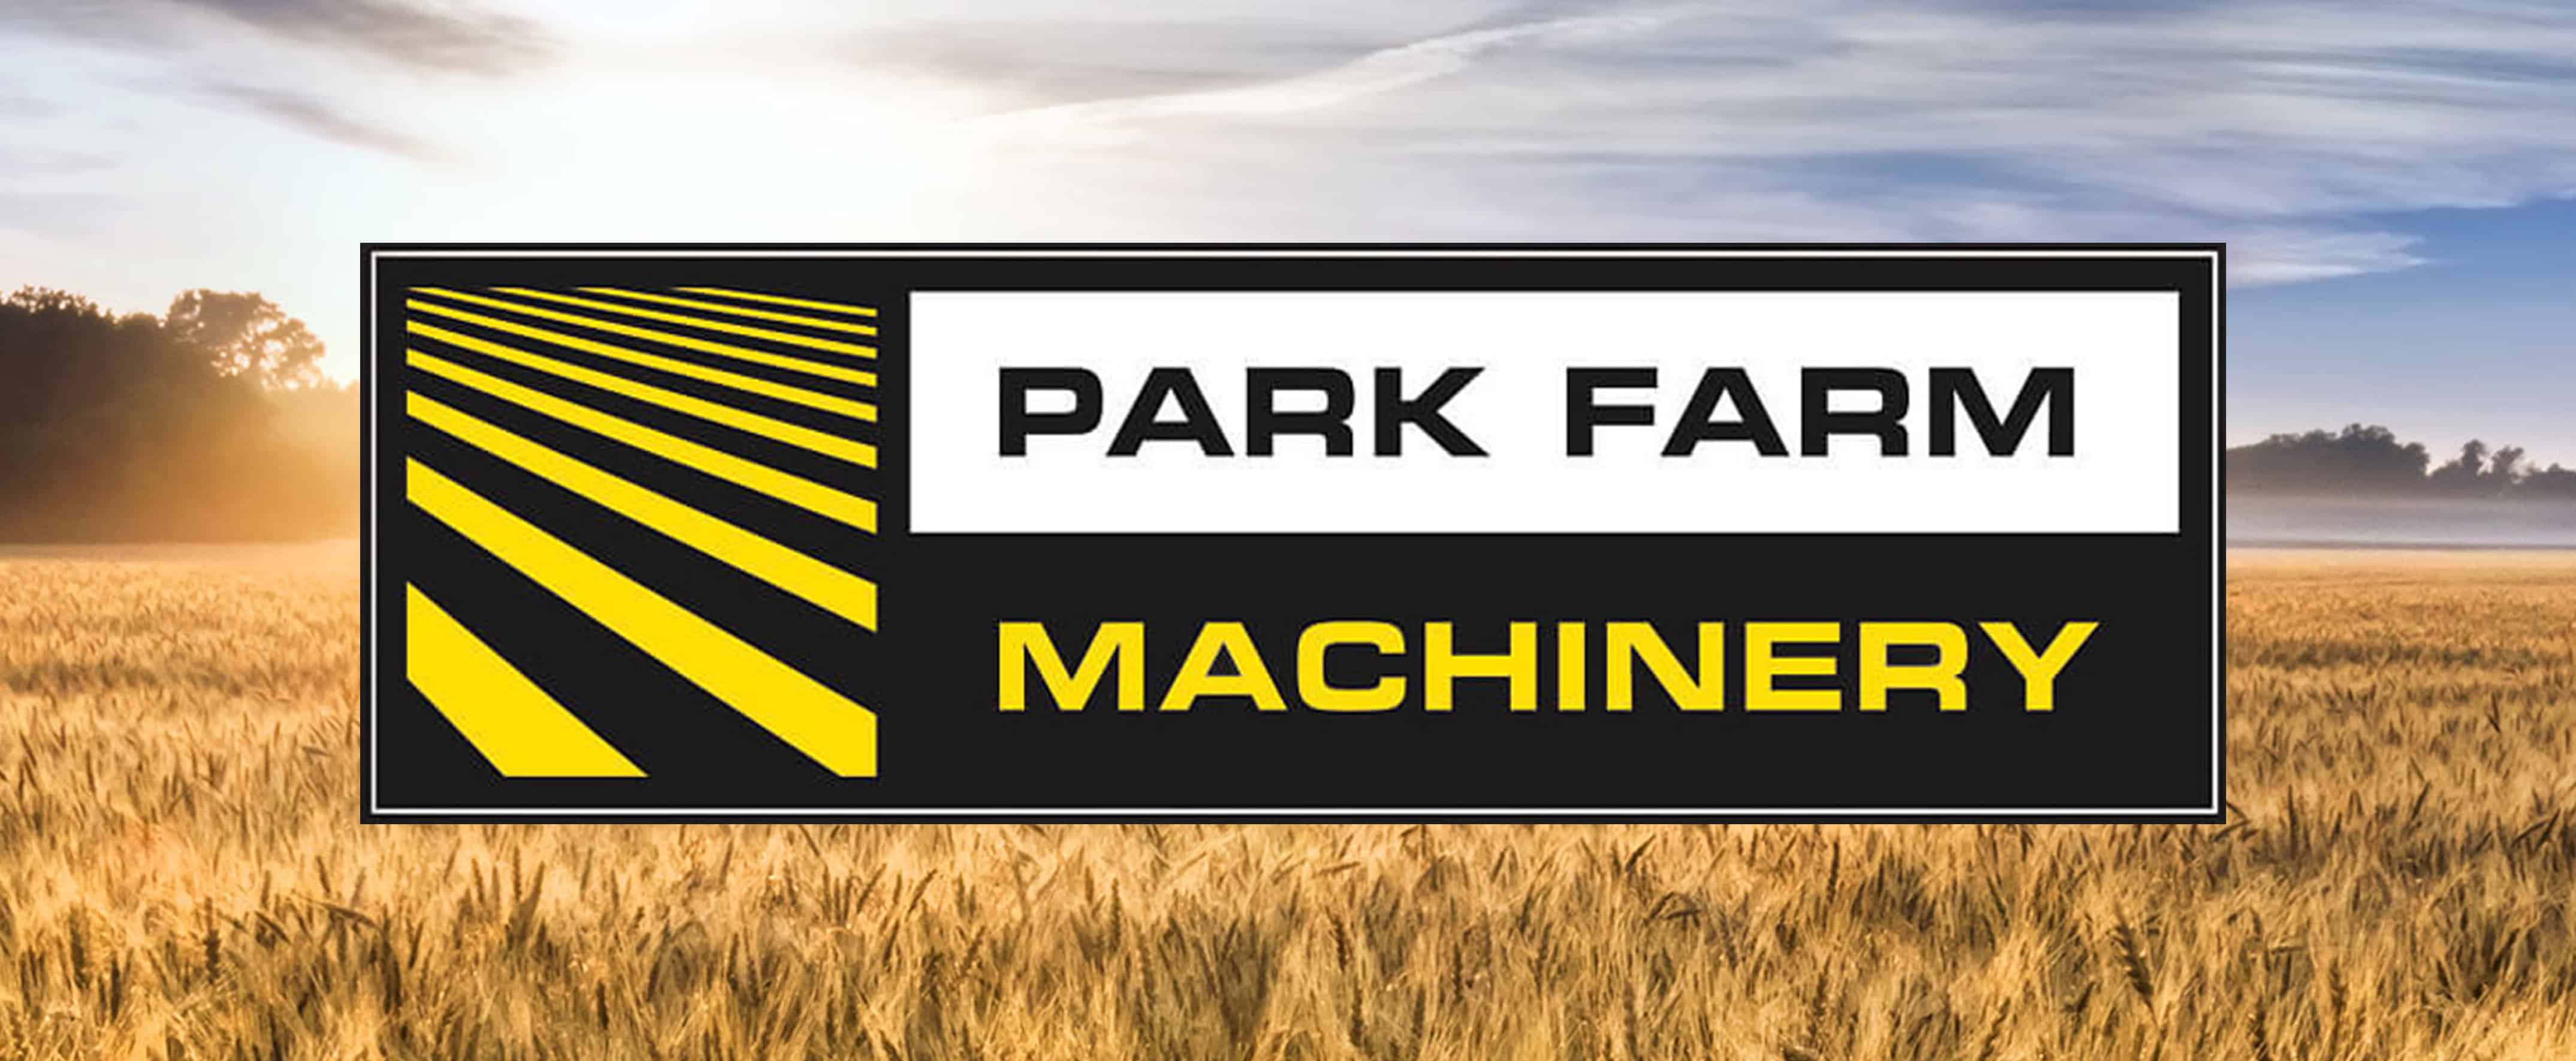 Park Farm Machinery logo with background image of wheat field